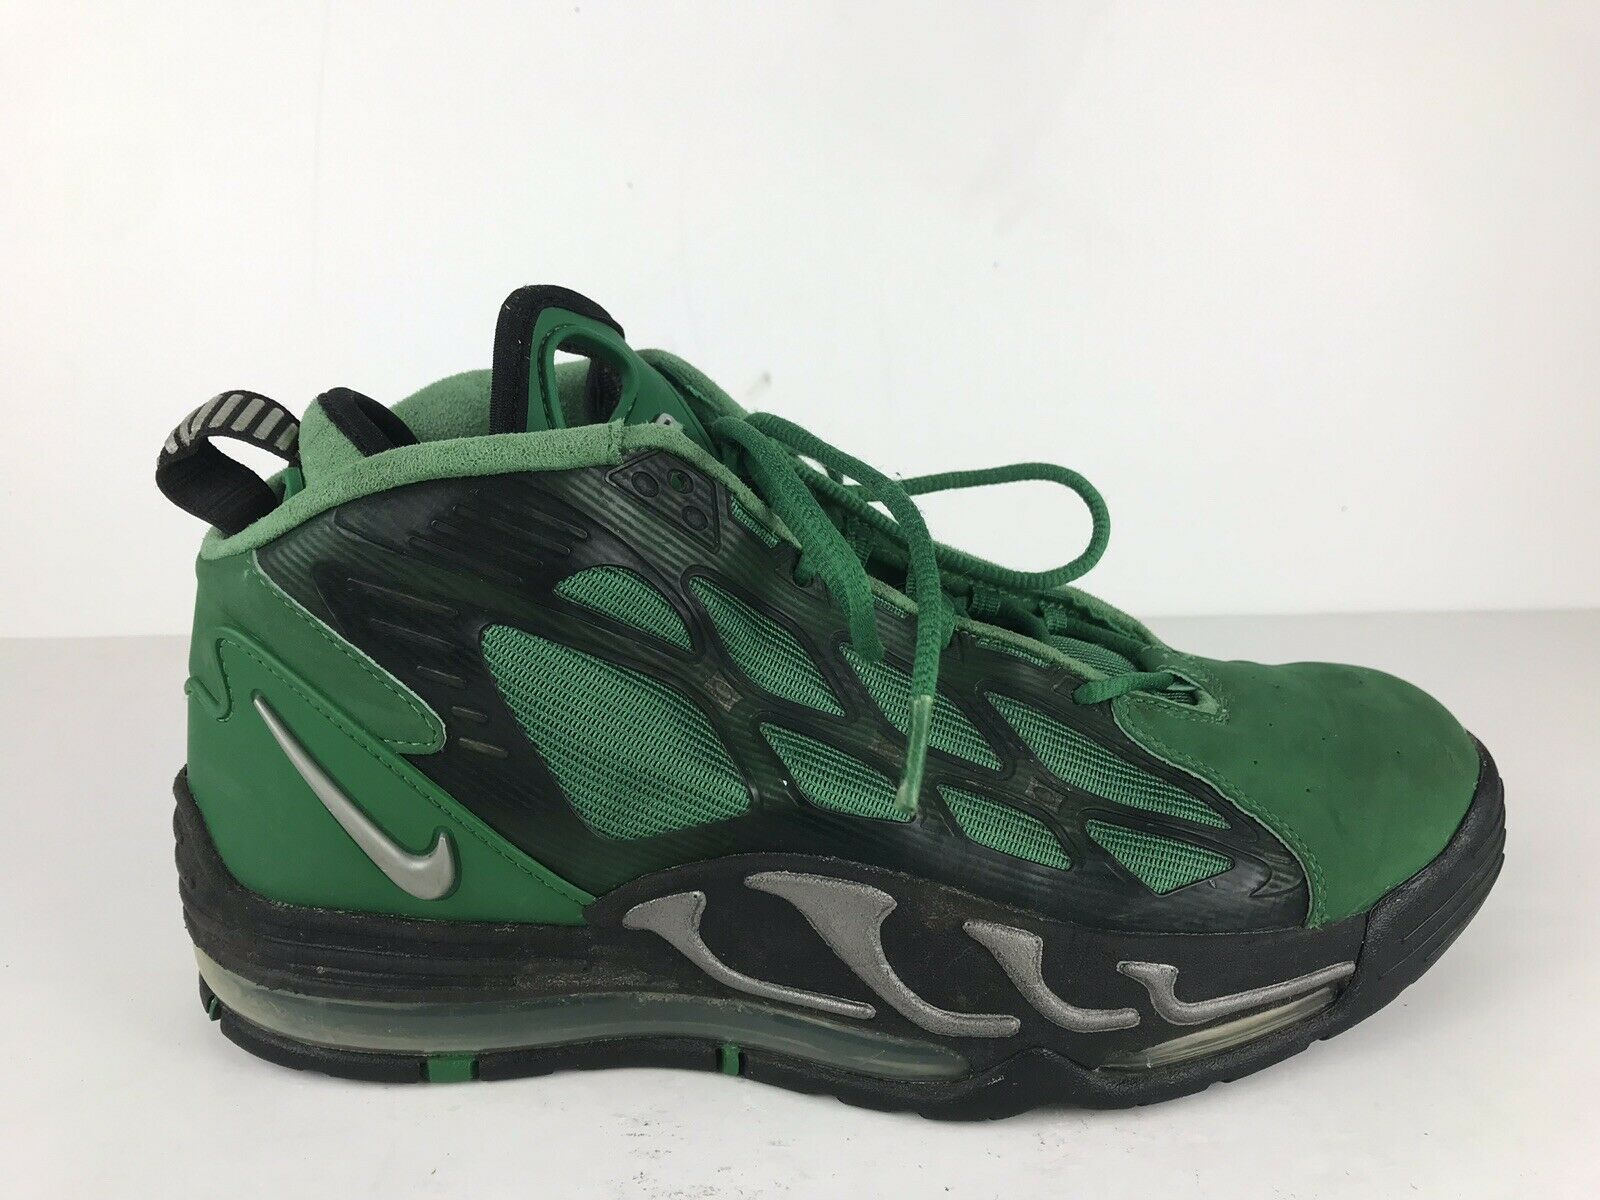 RARE Nike Air Max Men's US 11 Pillar Green 525226-300 Retro Vick Bo No Insoles